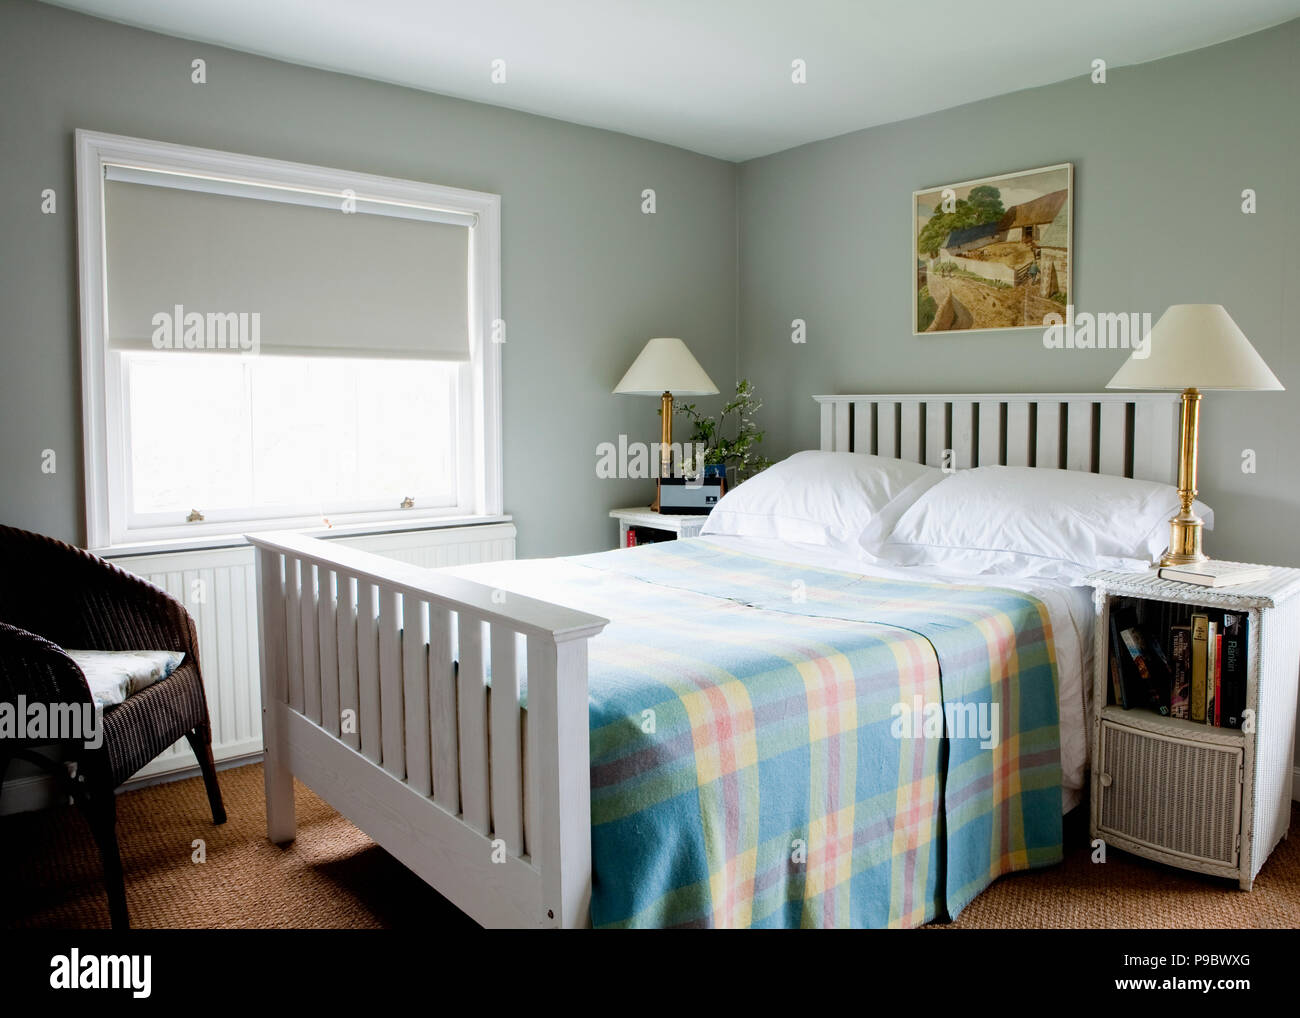 Checked Bed Cover On White Painted Bed In Pale Grey Bedroom With Pale Grey Blind On Window Stock Photo Alamy